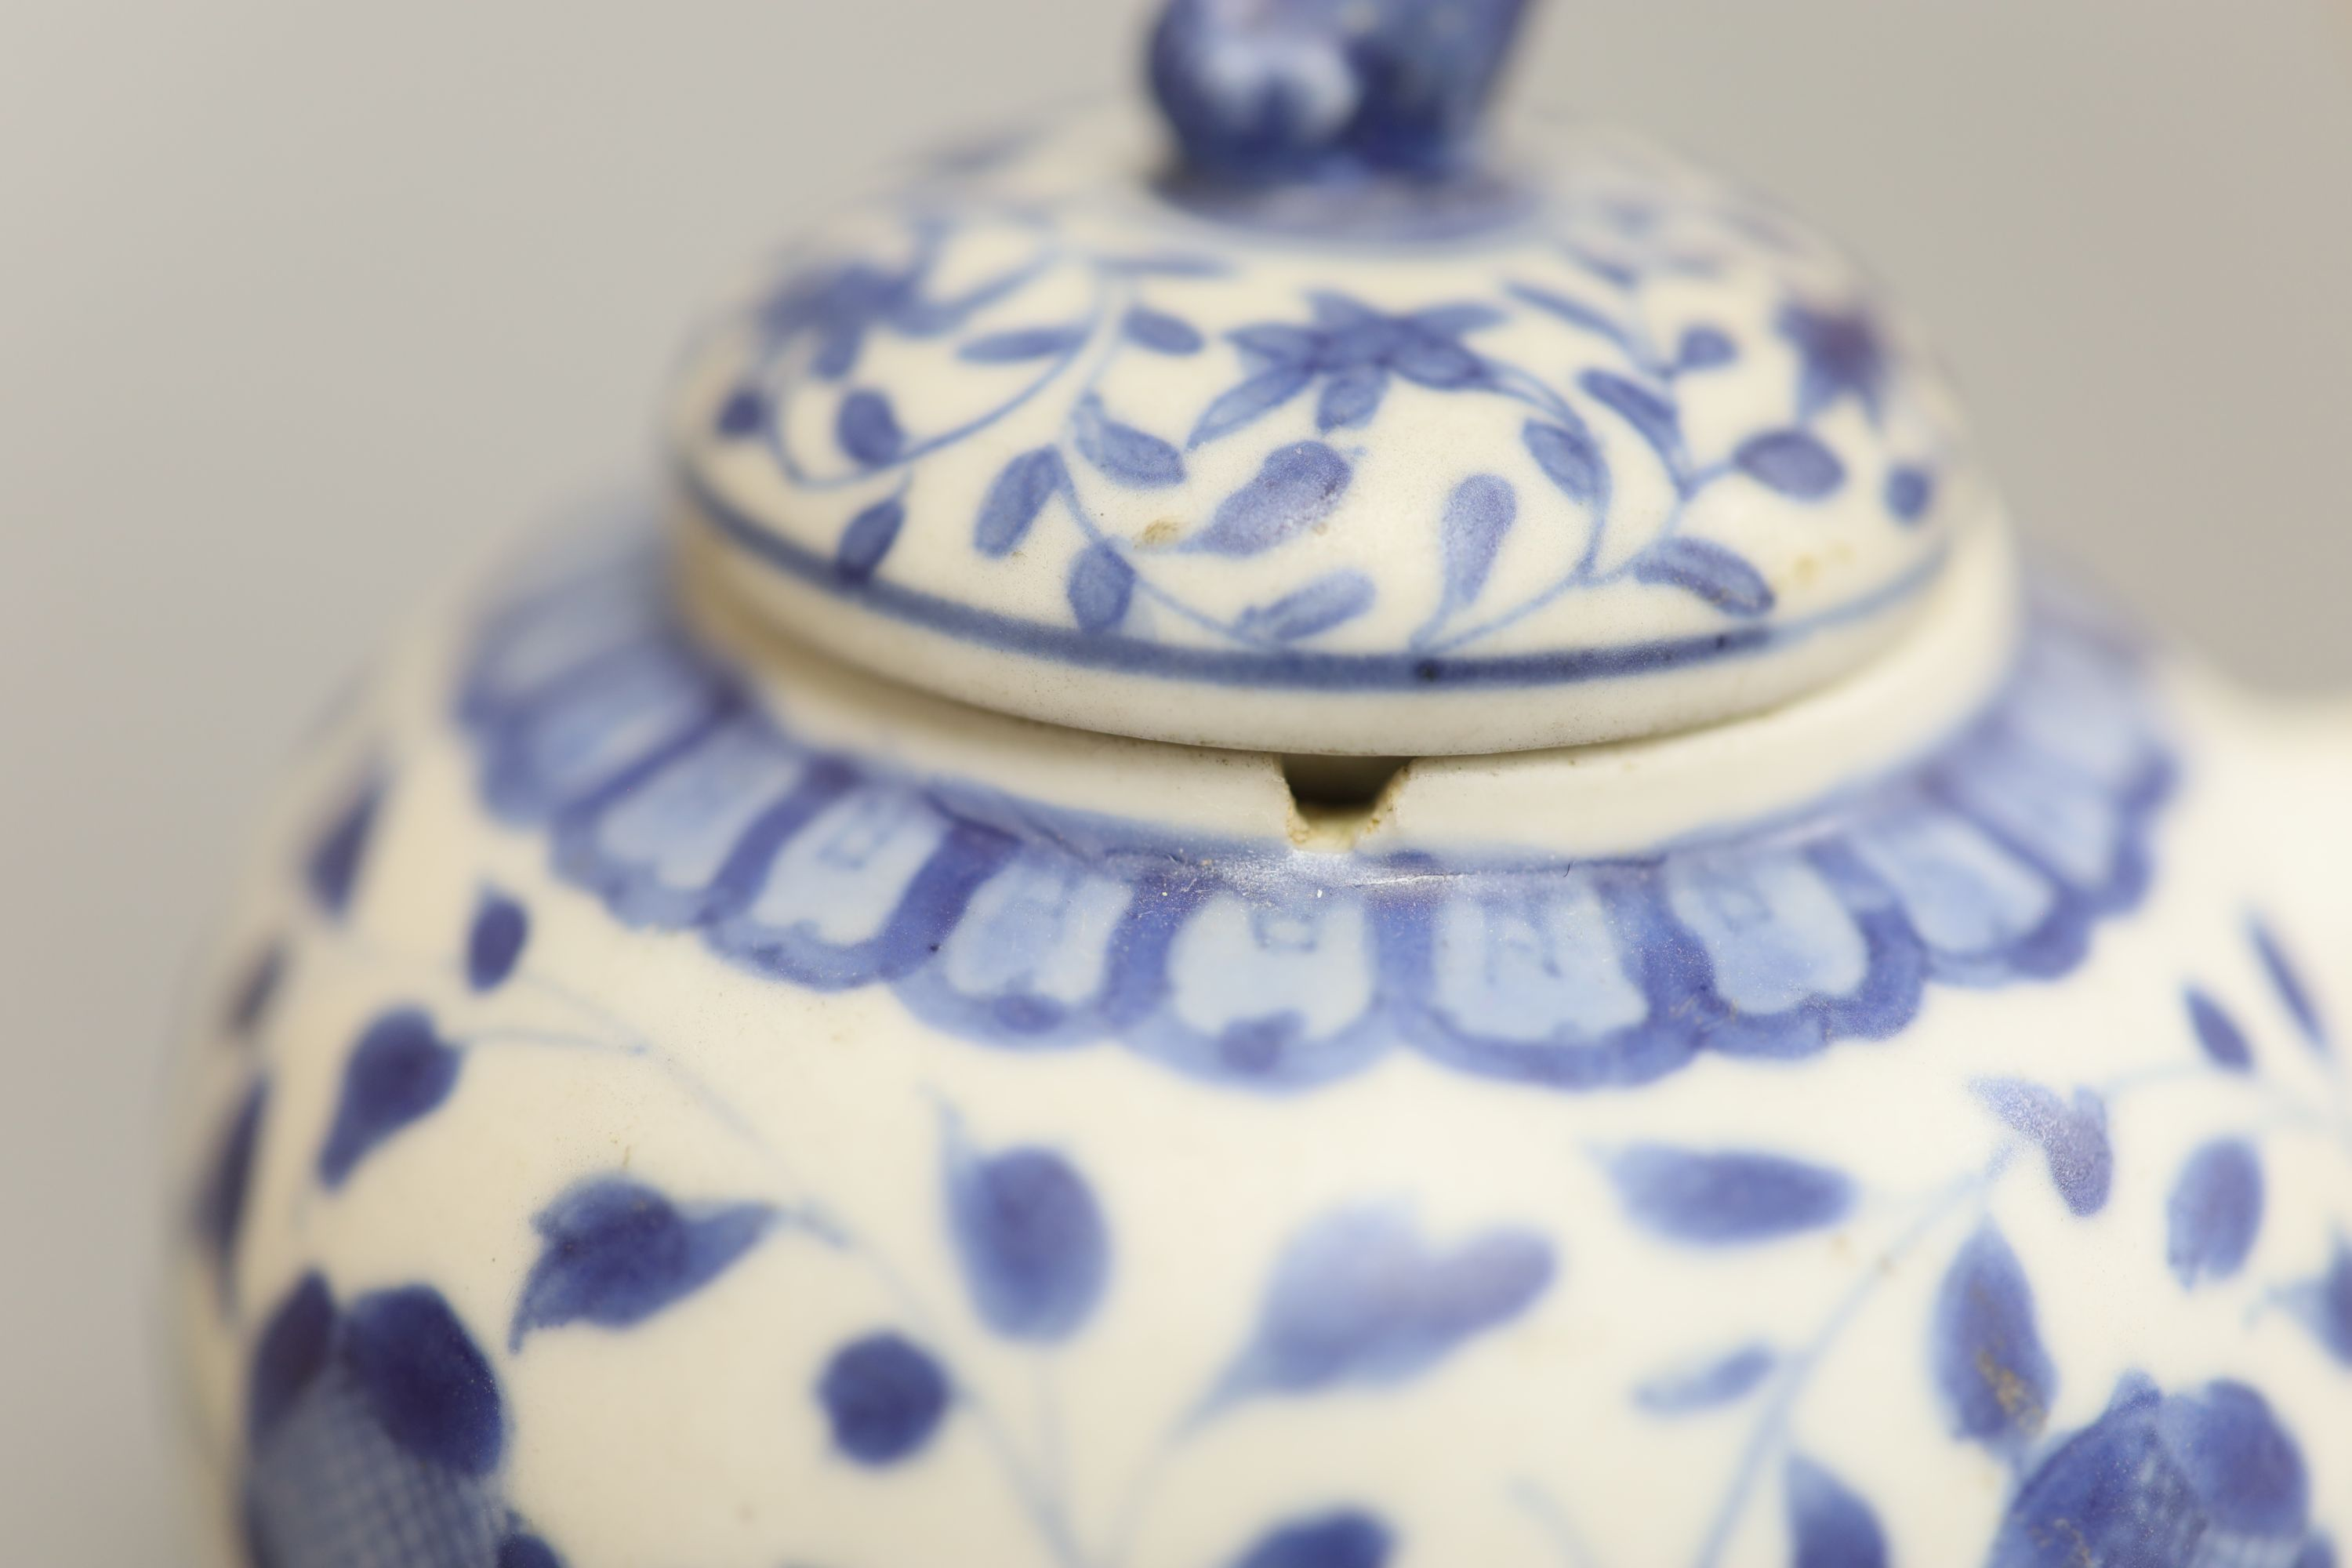 A Chinese Vungtao cargo blue and white mustard pot and cover, height 9cm - Image 4 of 7